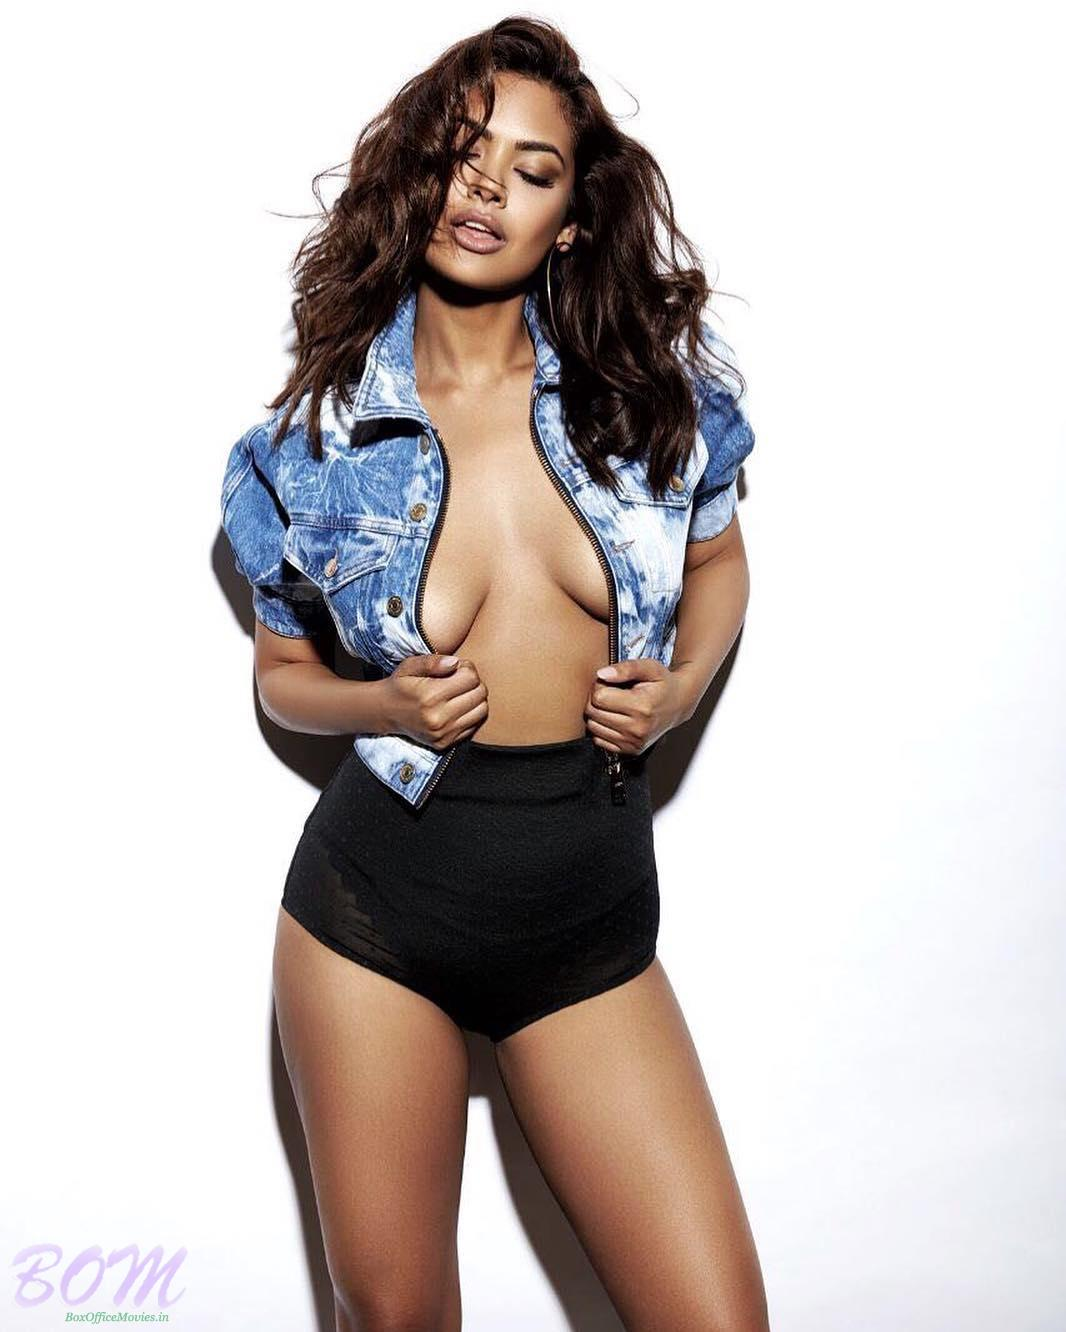 Esha Gupta latest bold pic by Taras